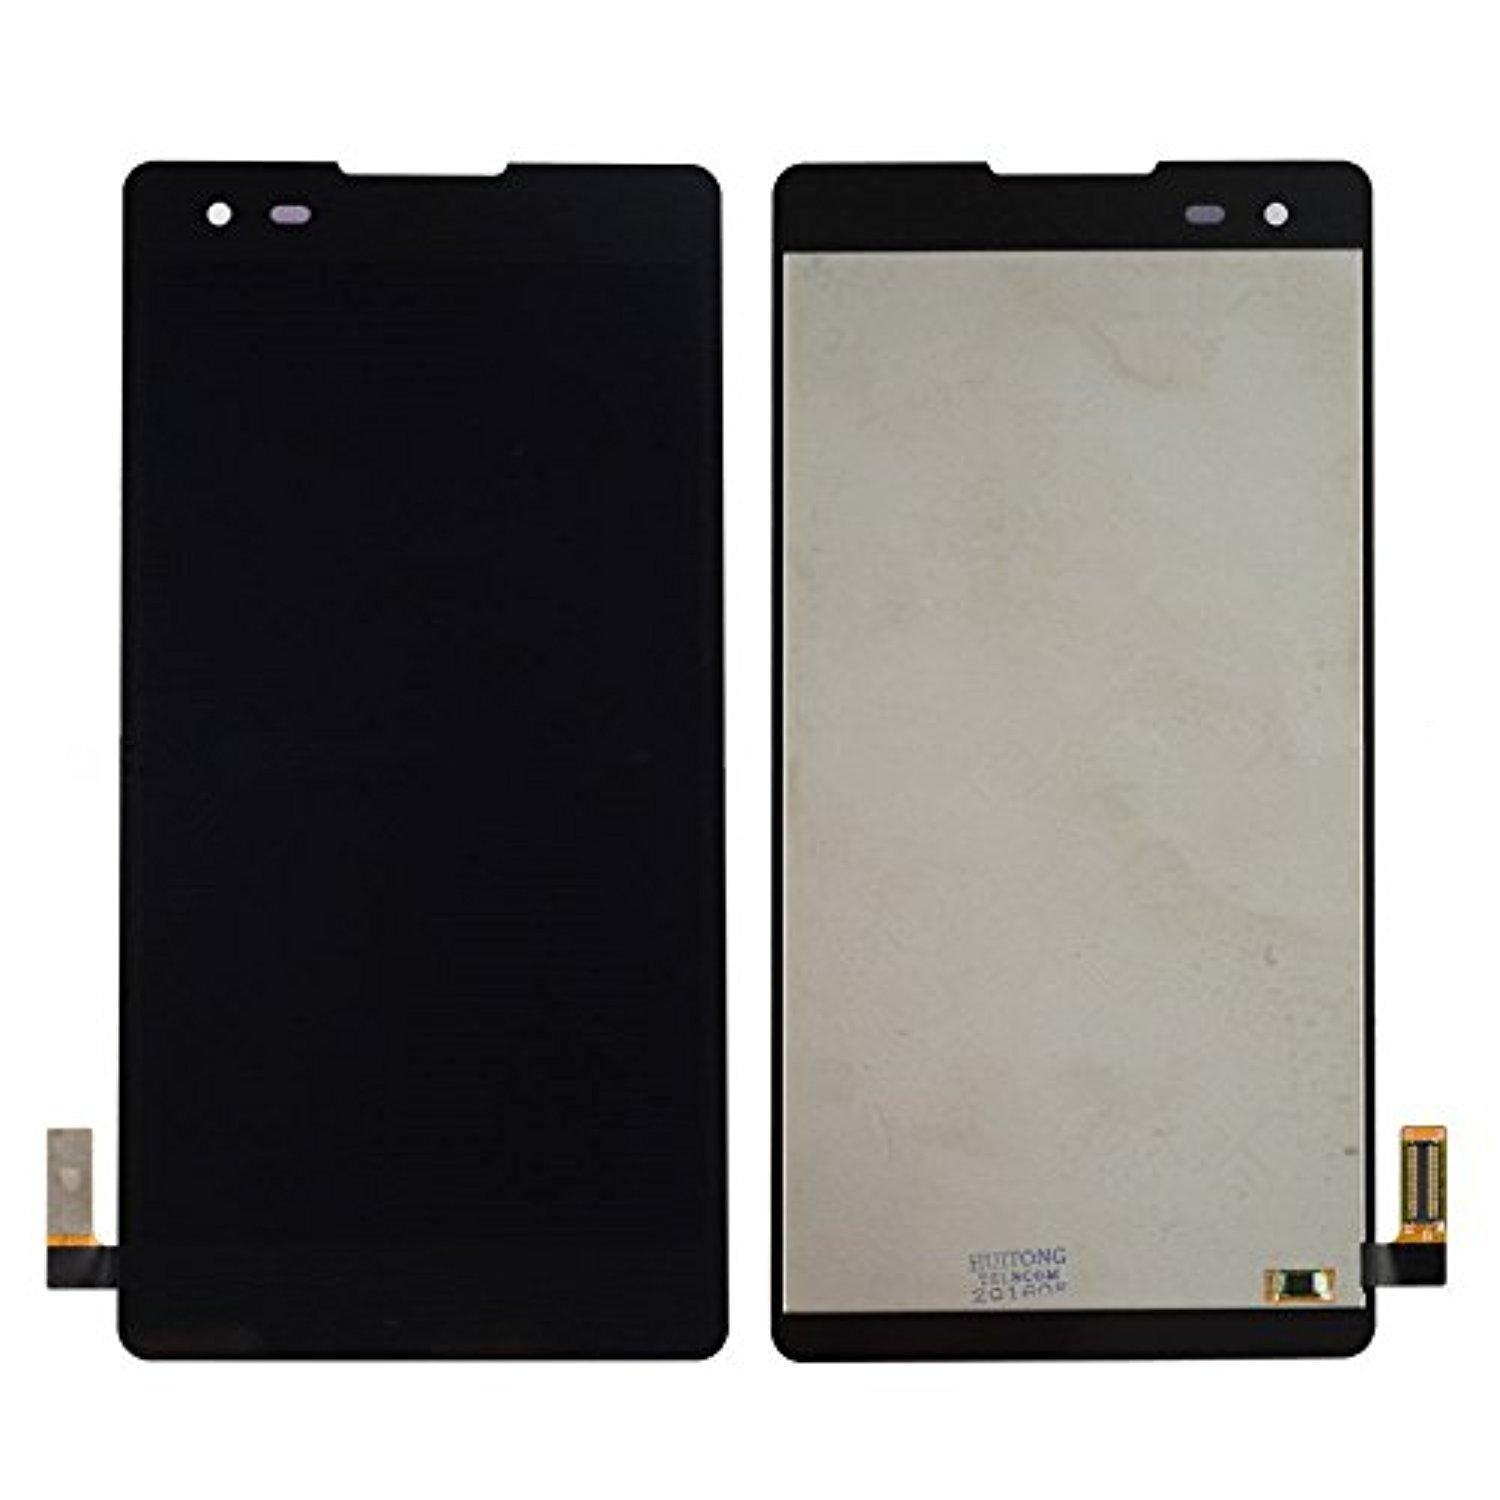 New LG K6 Touch Screen Digitizer+LCD Display Assembly Black